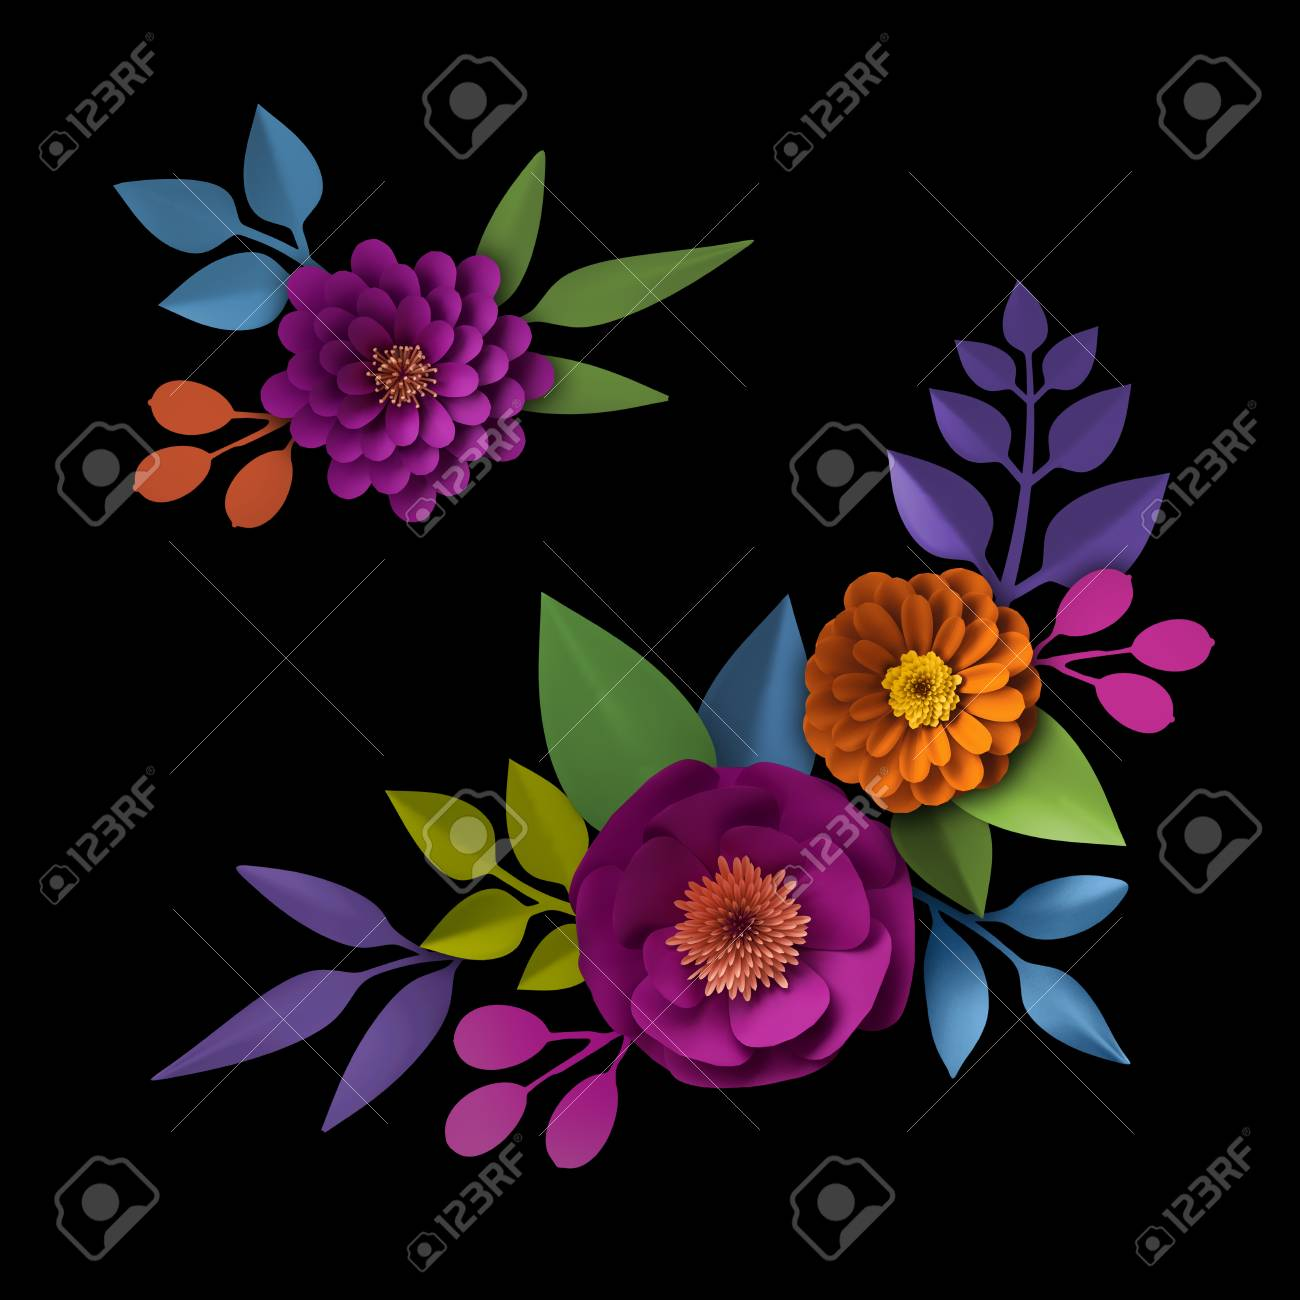 3d Render Abstract Colorful Paper Flowers Wall Decor Autumn